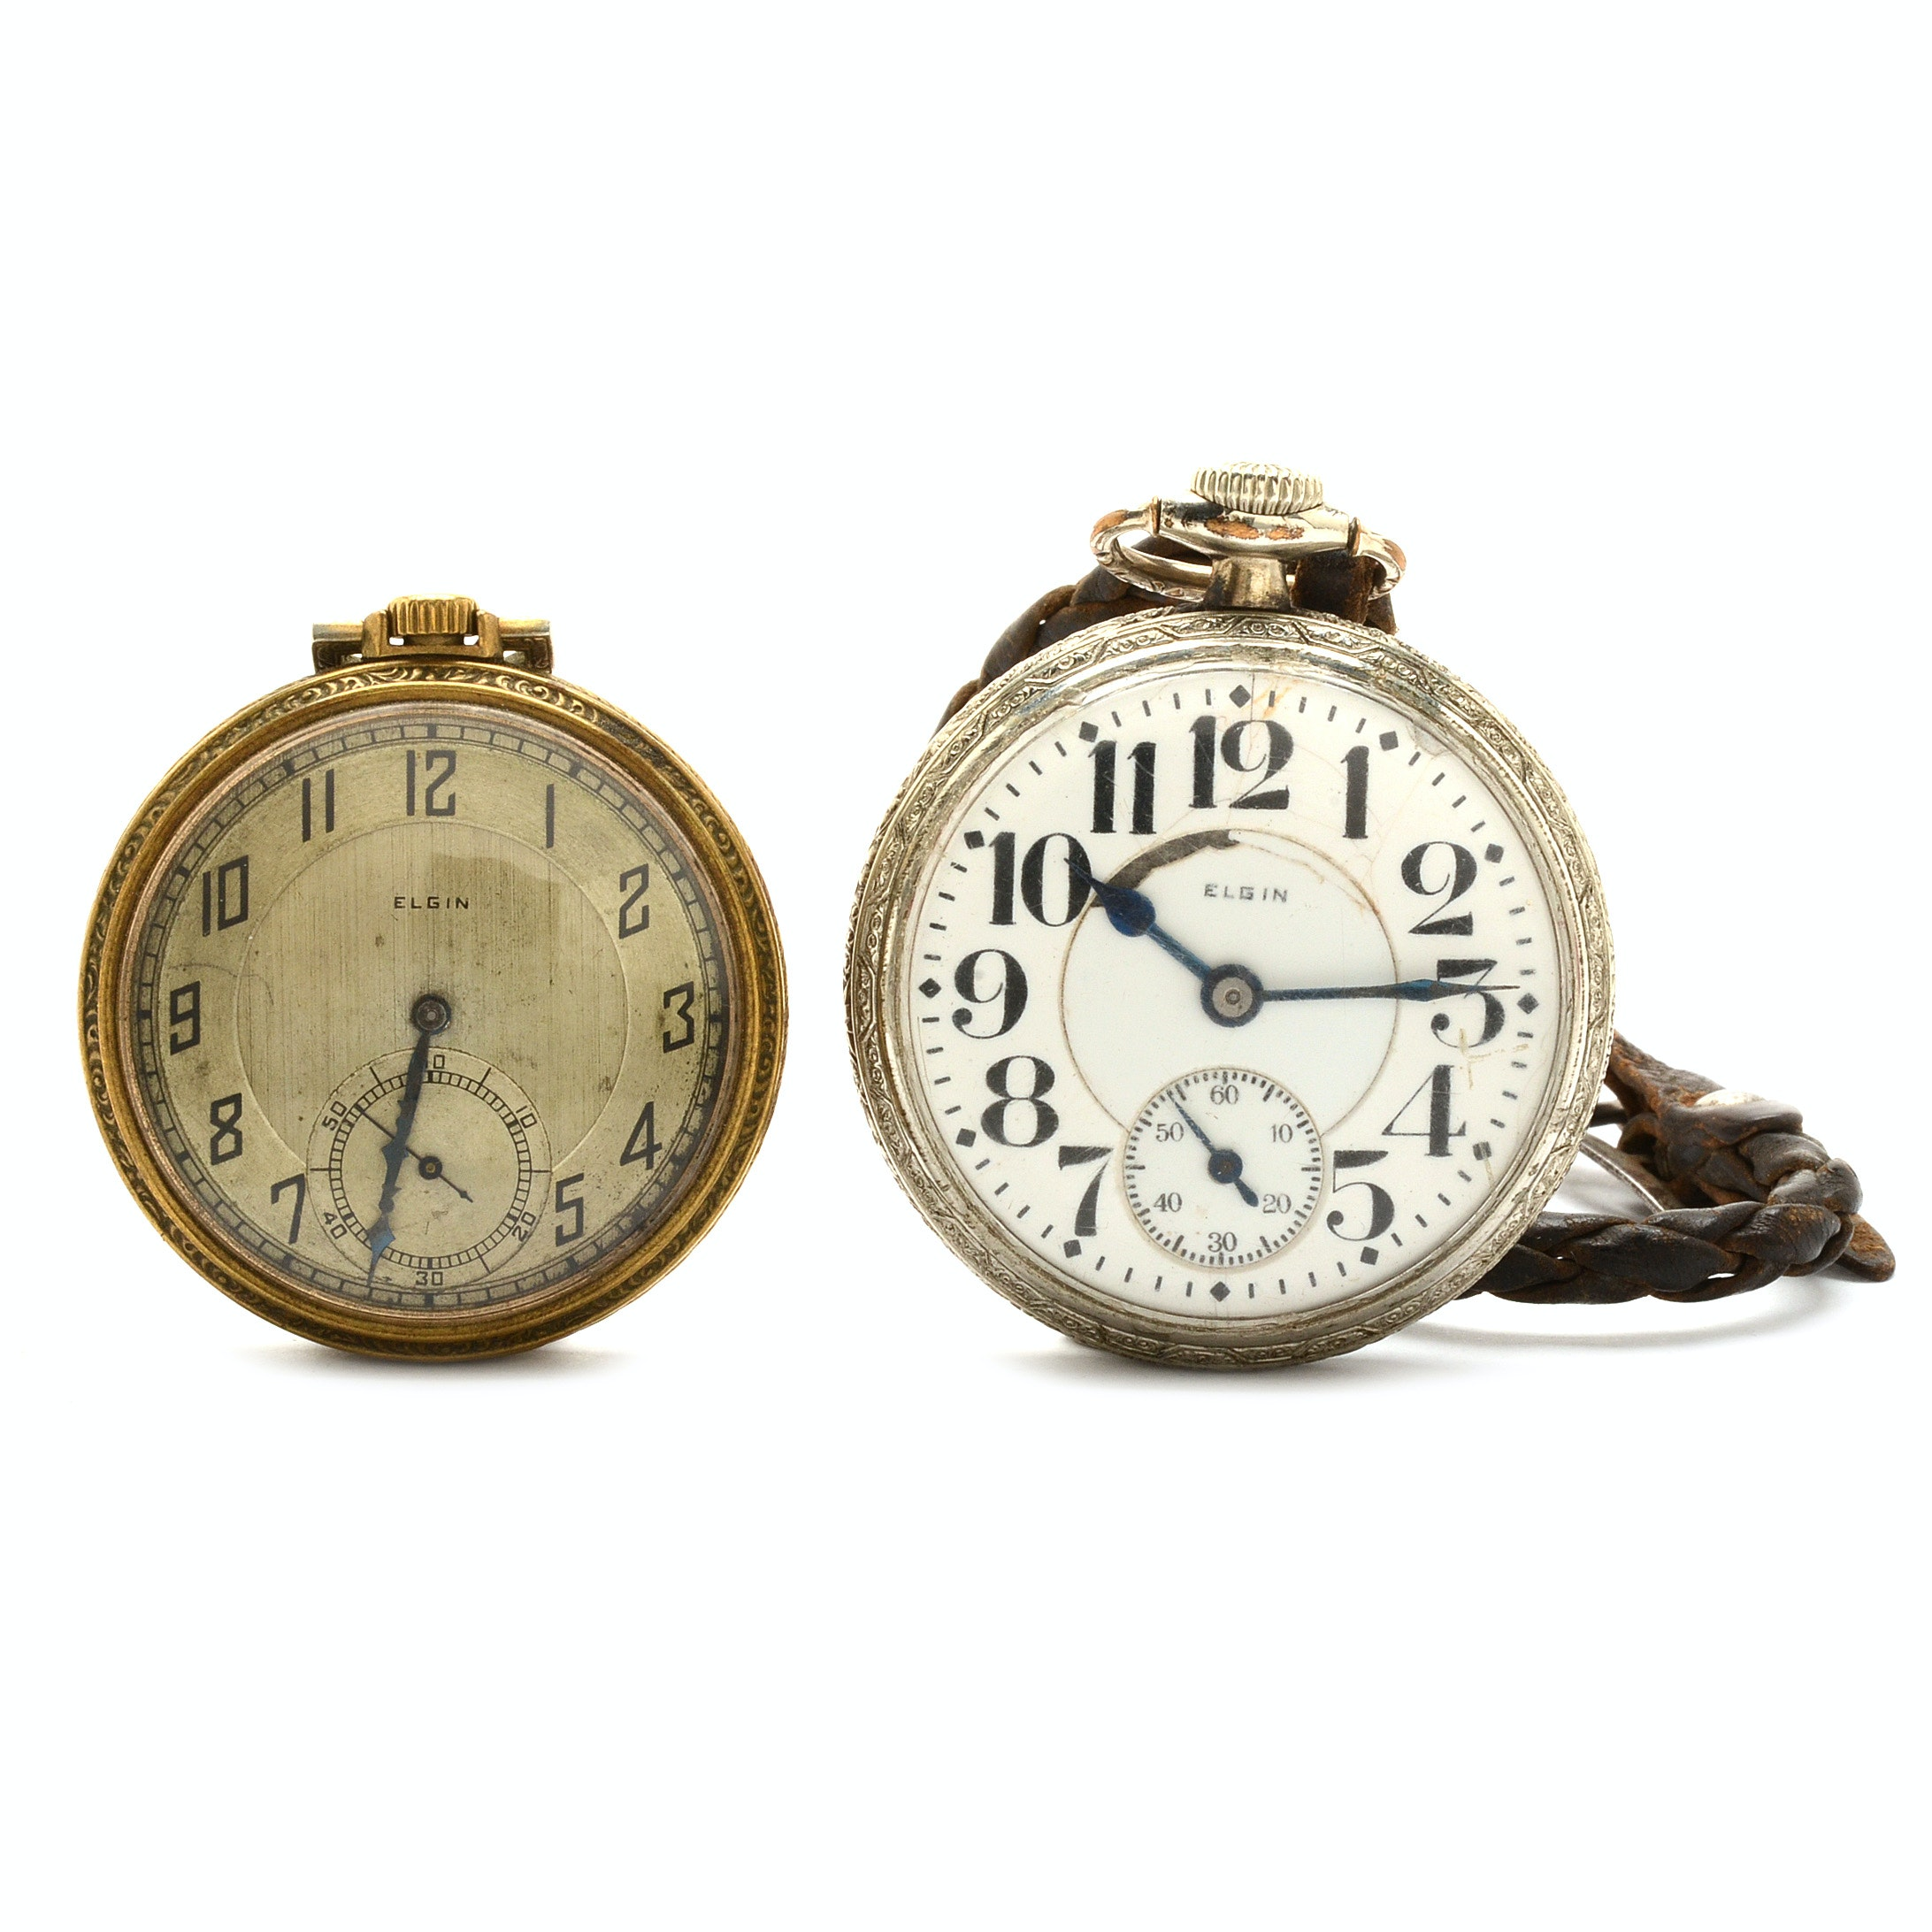 Two Vintage Elgin Base Metal Open Face Pocket Watches